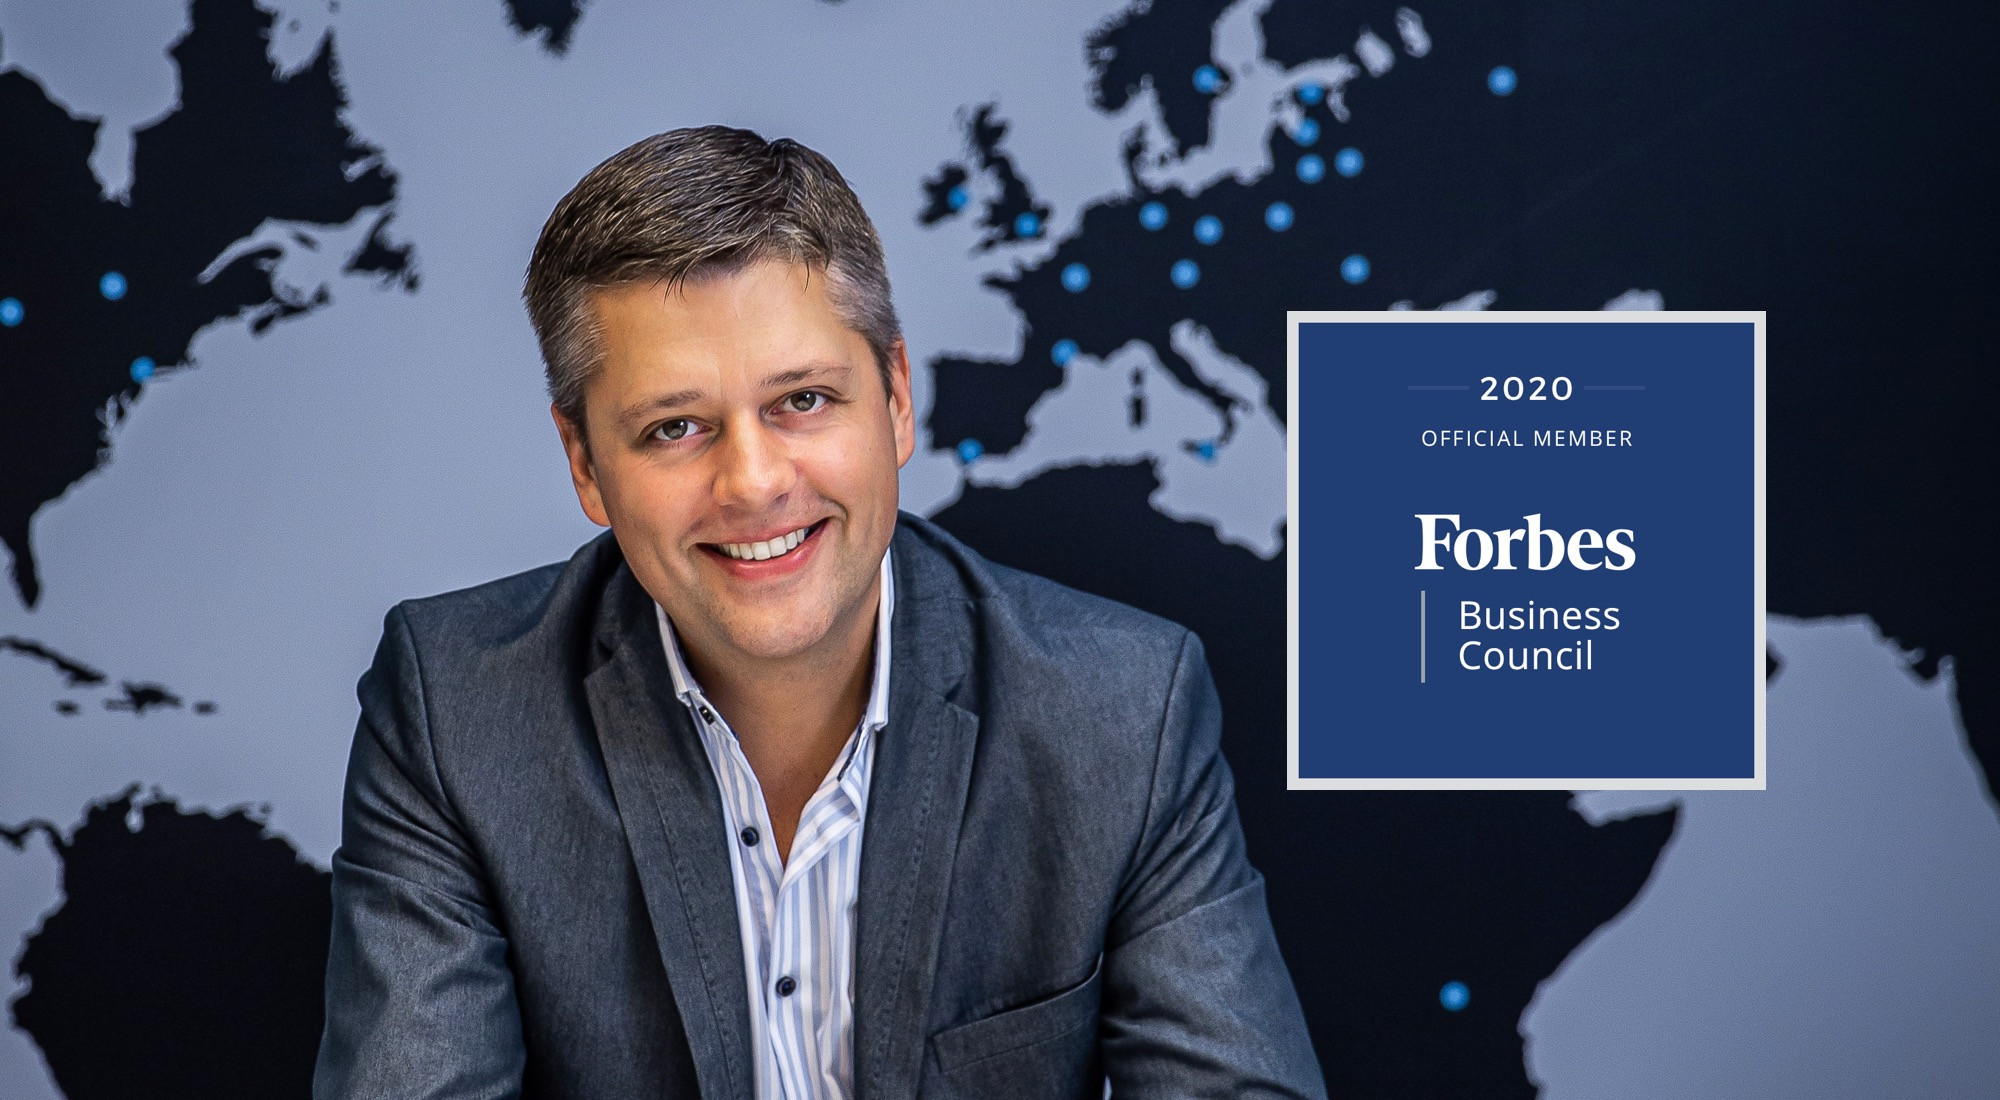 UXDA's Founder CEO Alex Kreger Becomes a Member of the Prestigious Forbes Business Council